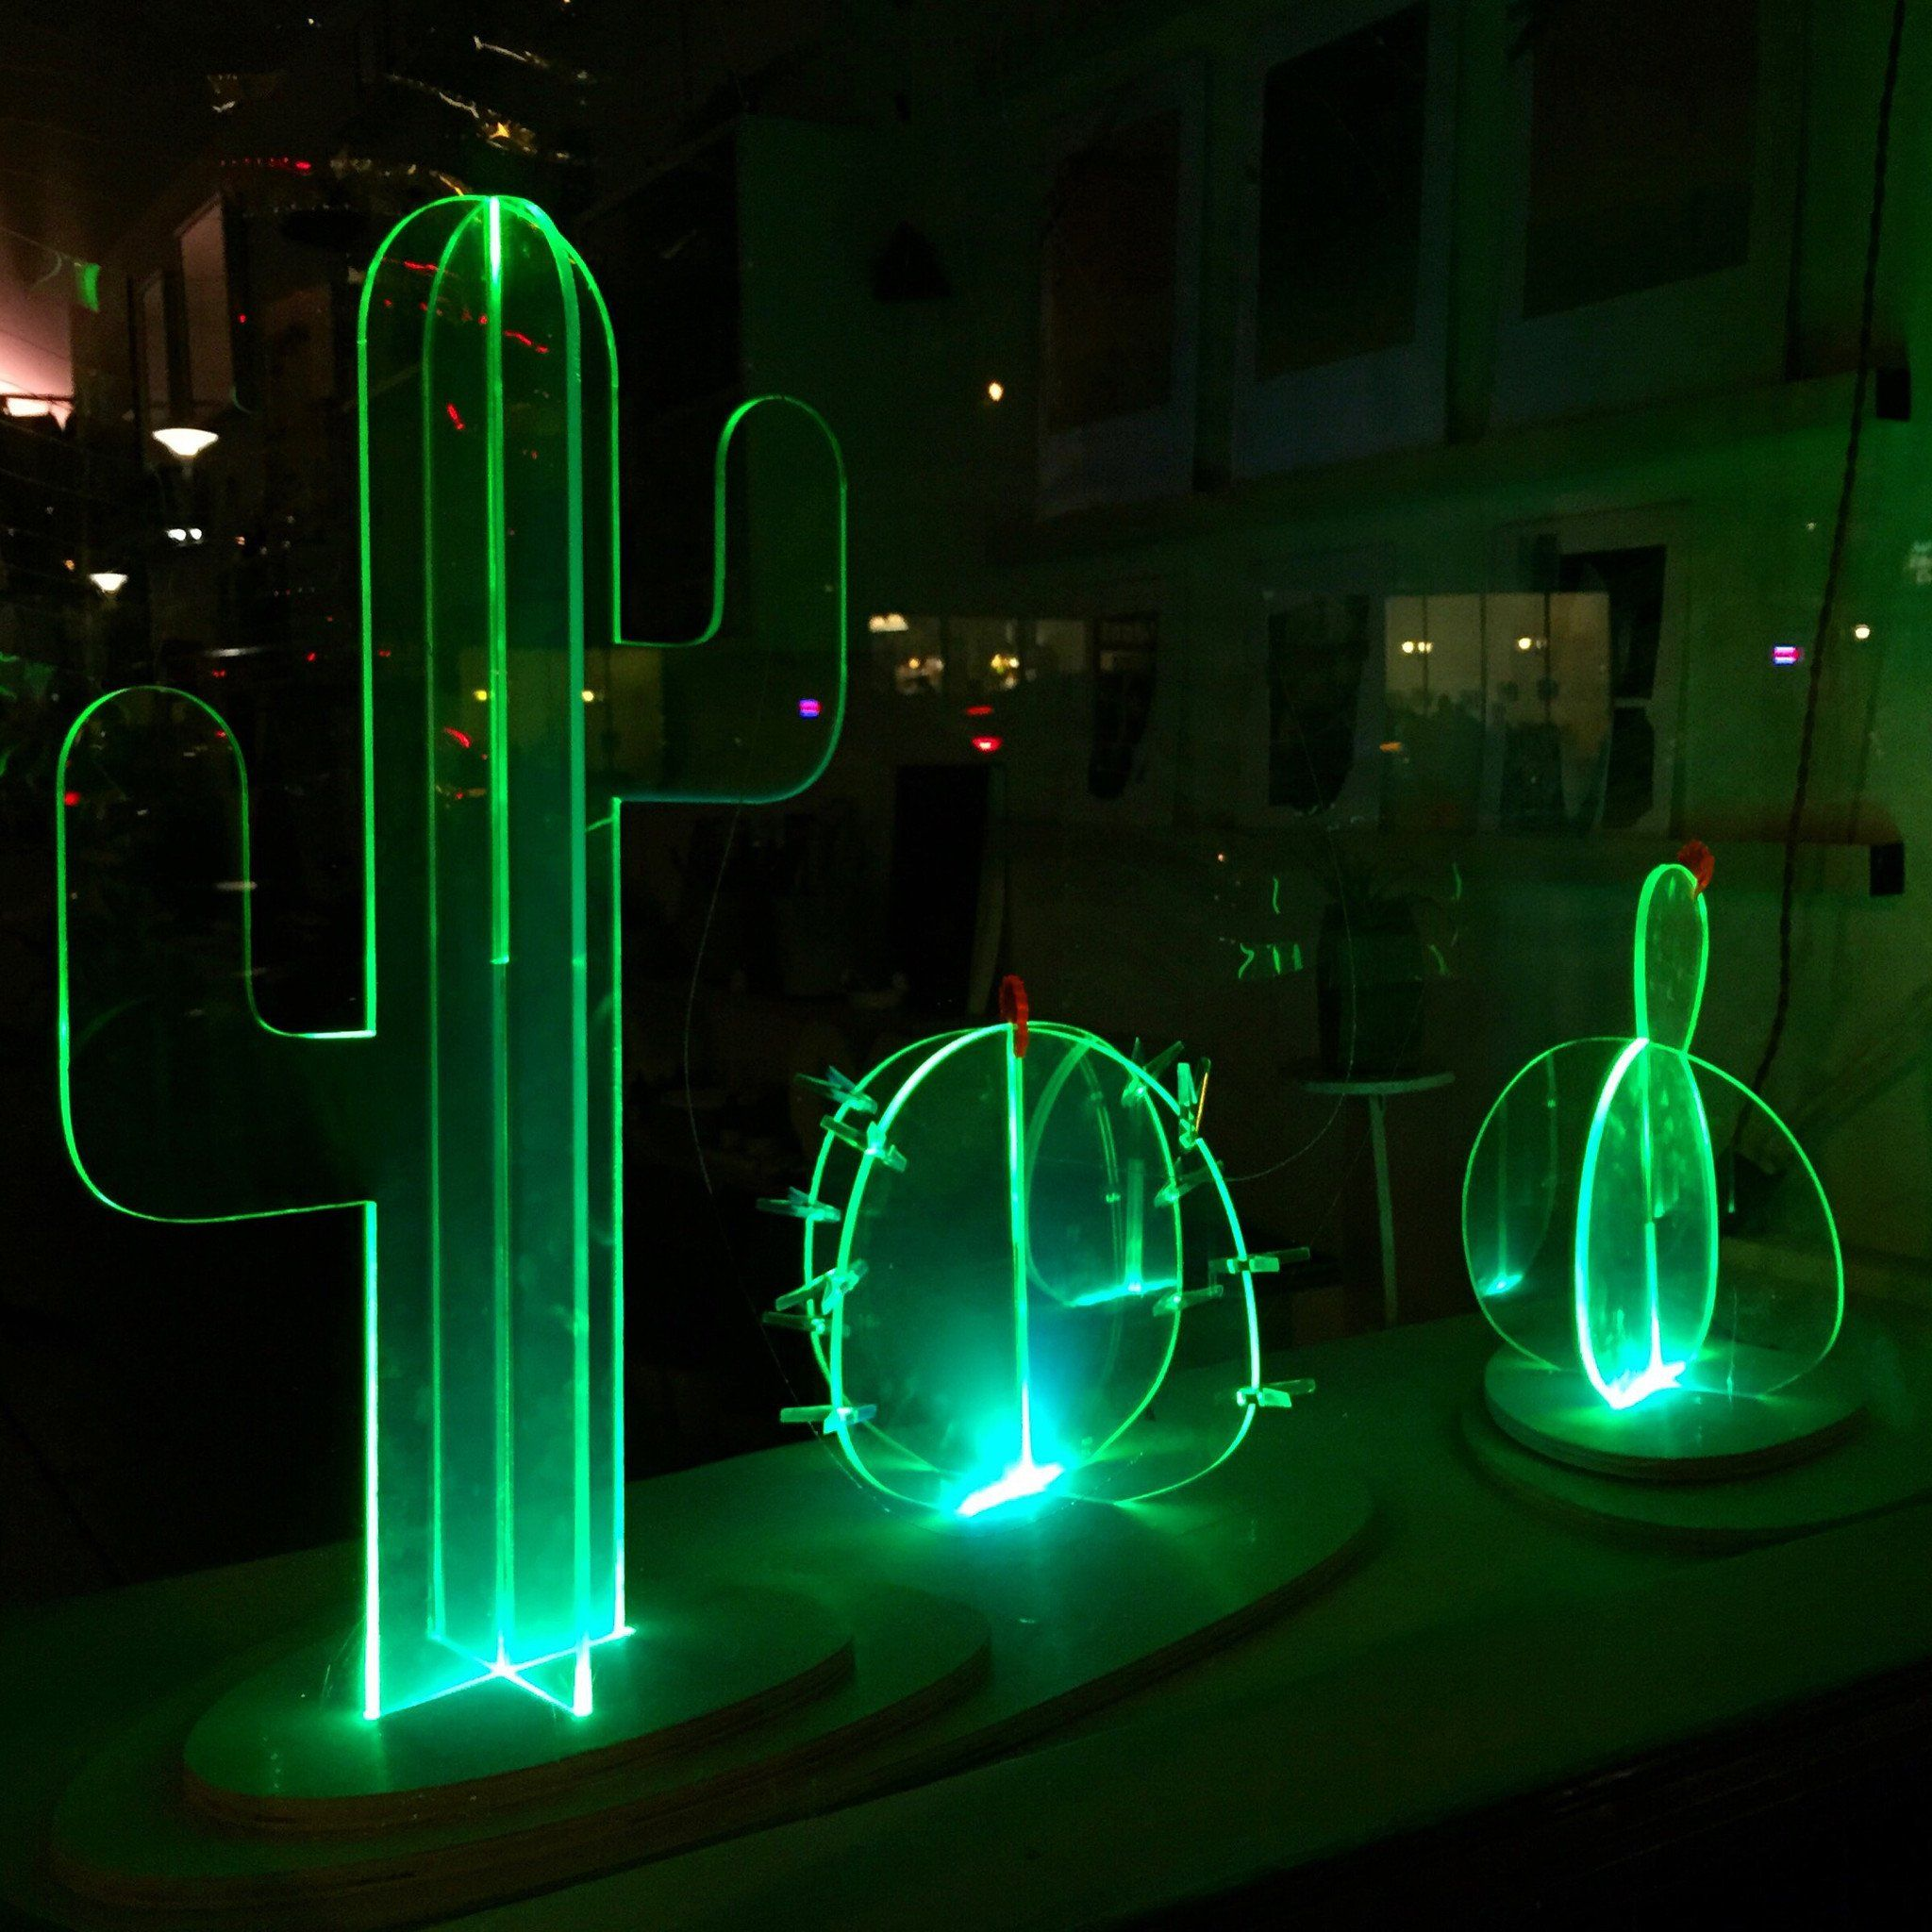 Cactus Verlichting Medium Fluorescent Cactus Lamp Two Piece Base Acrylic